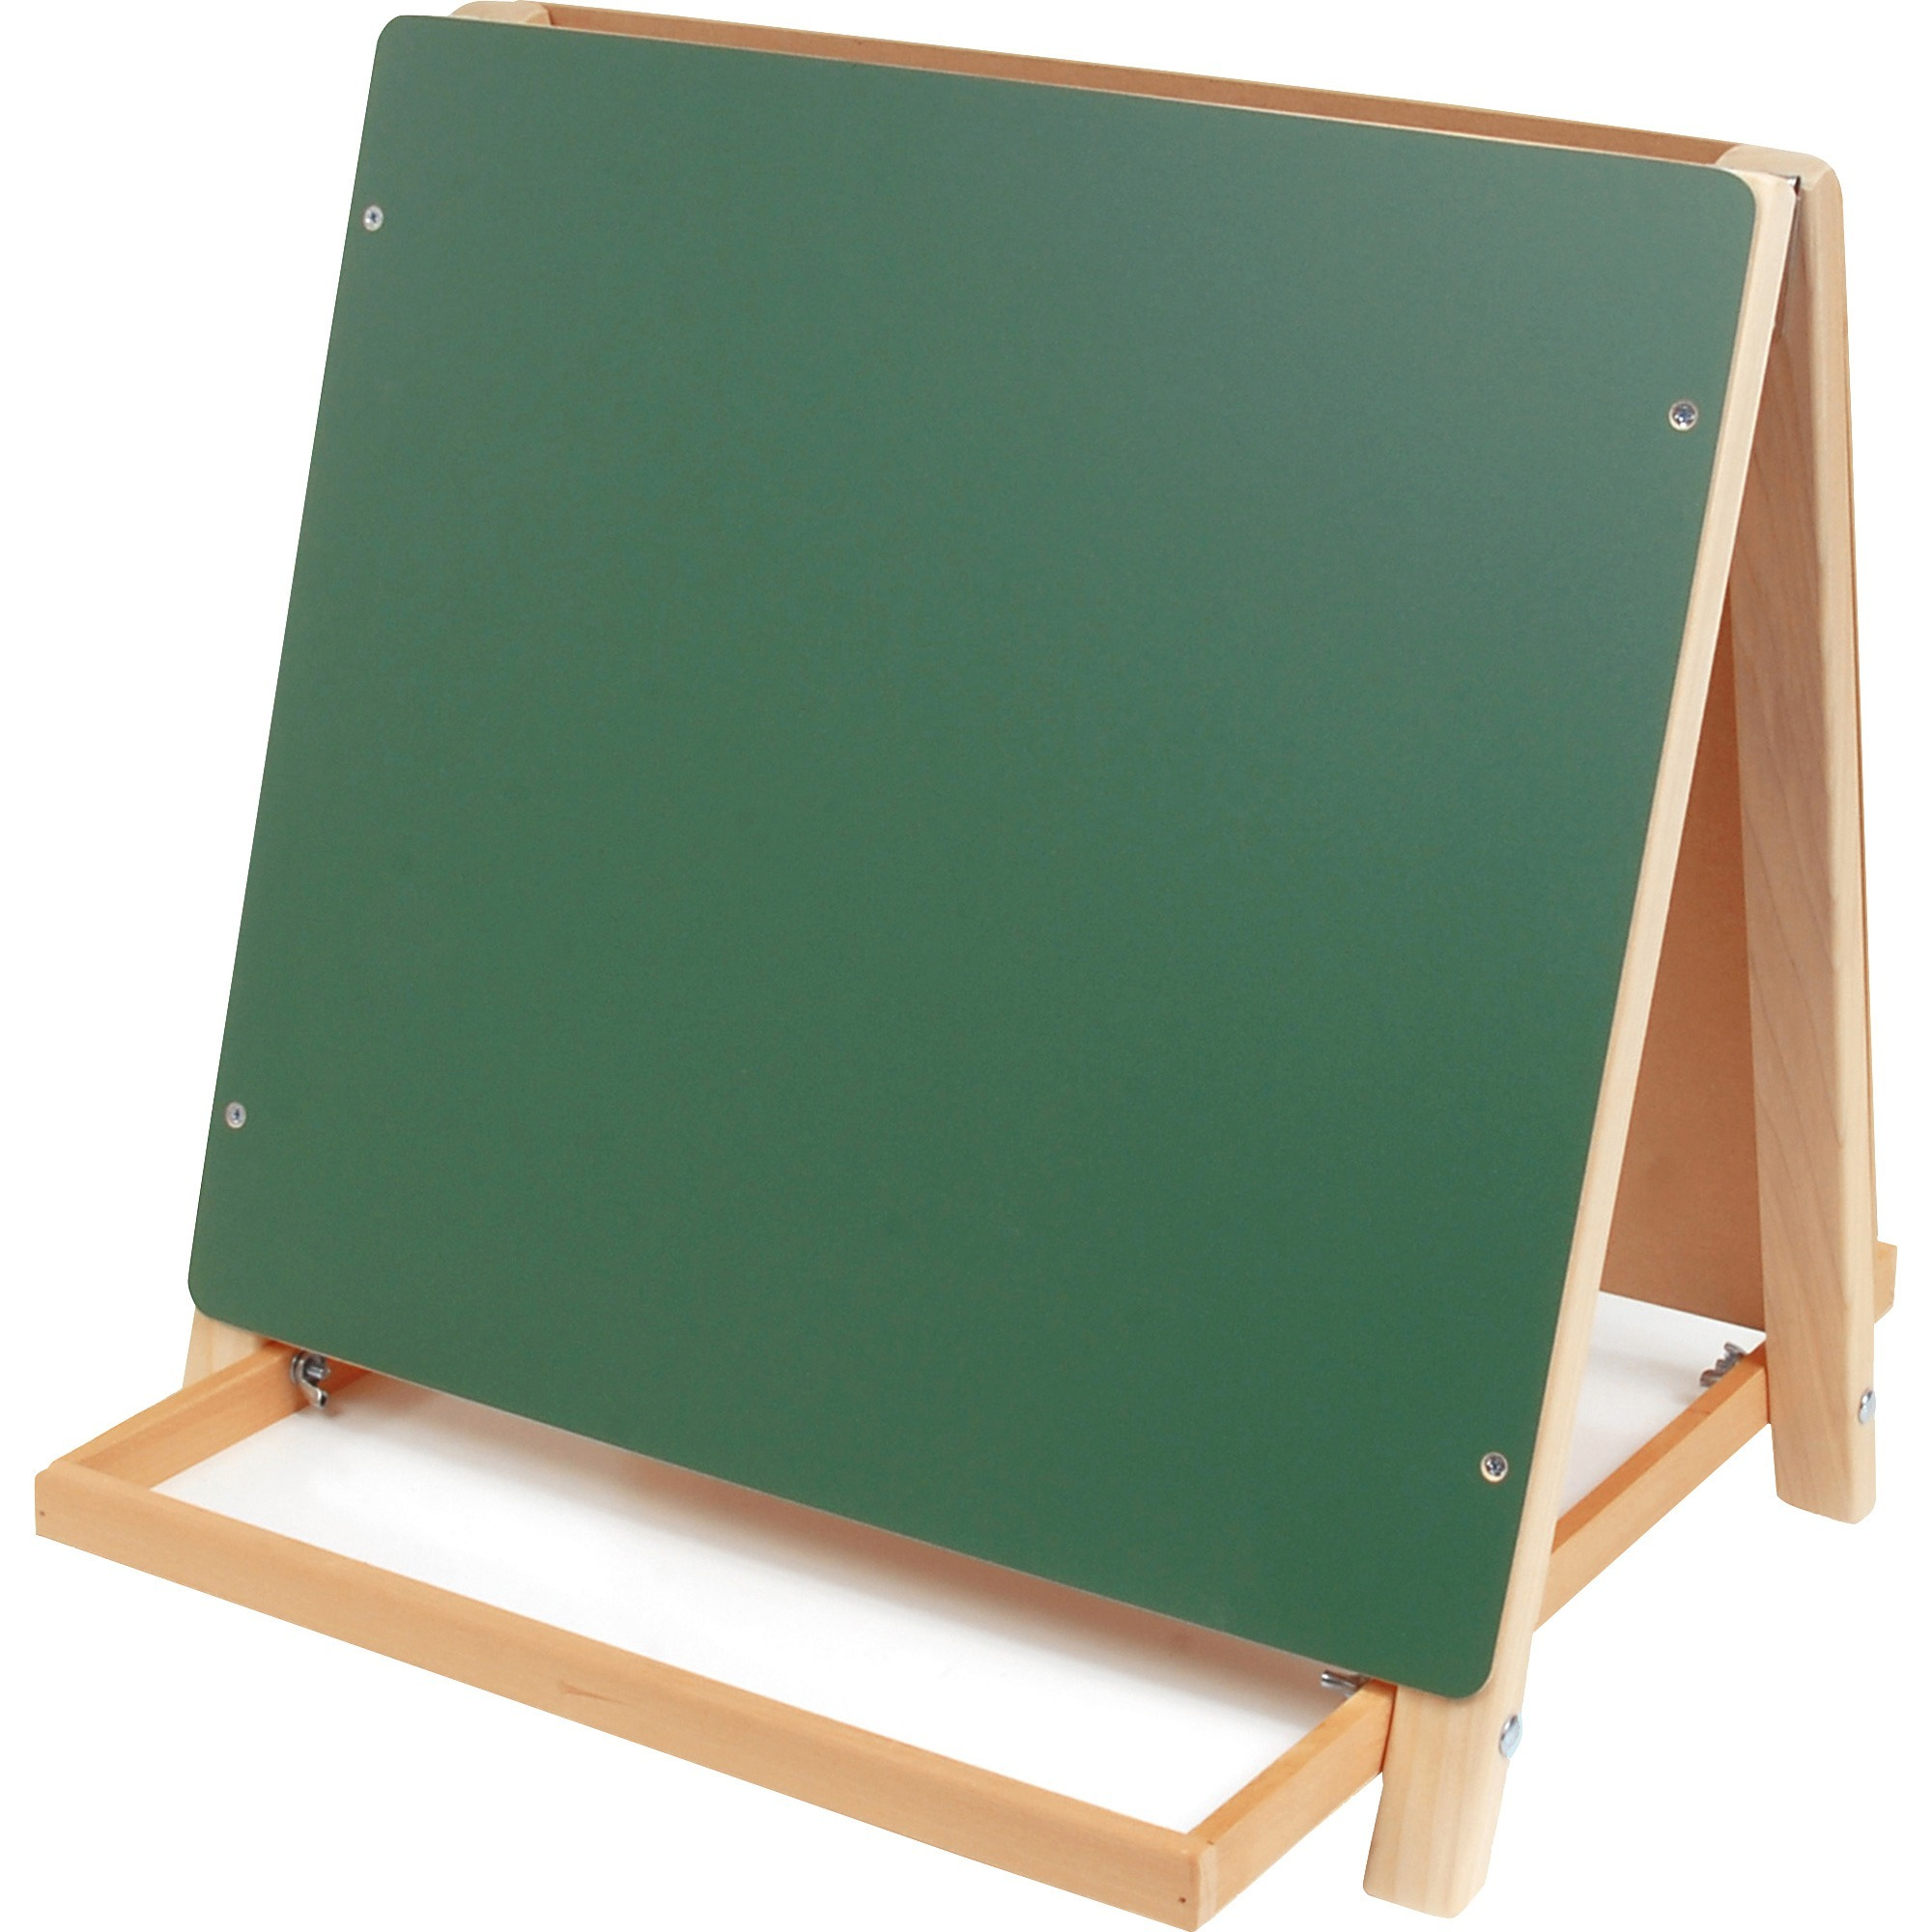 Flipside Products, Inc Flipside Dual Surface Table Top Easel - White/green Surface - Rectangle - Tabletop - Assembly Required - 1 Each